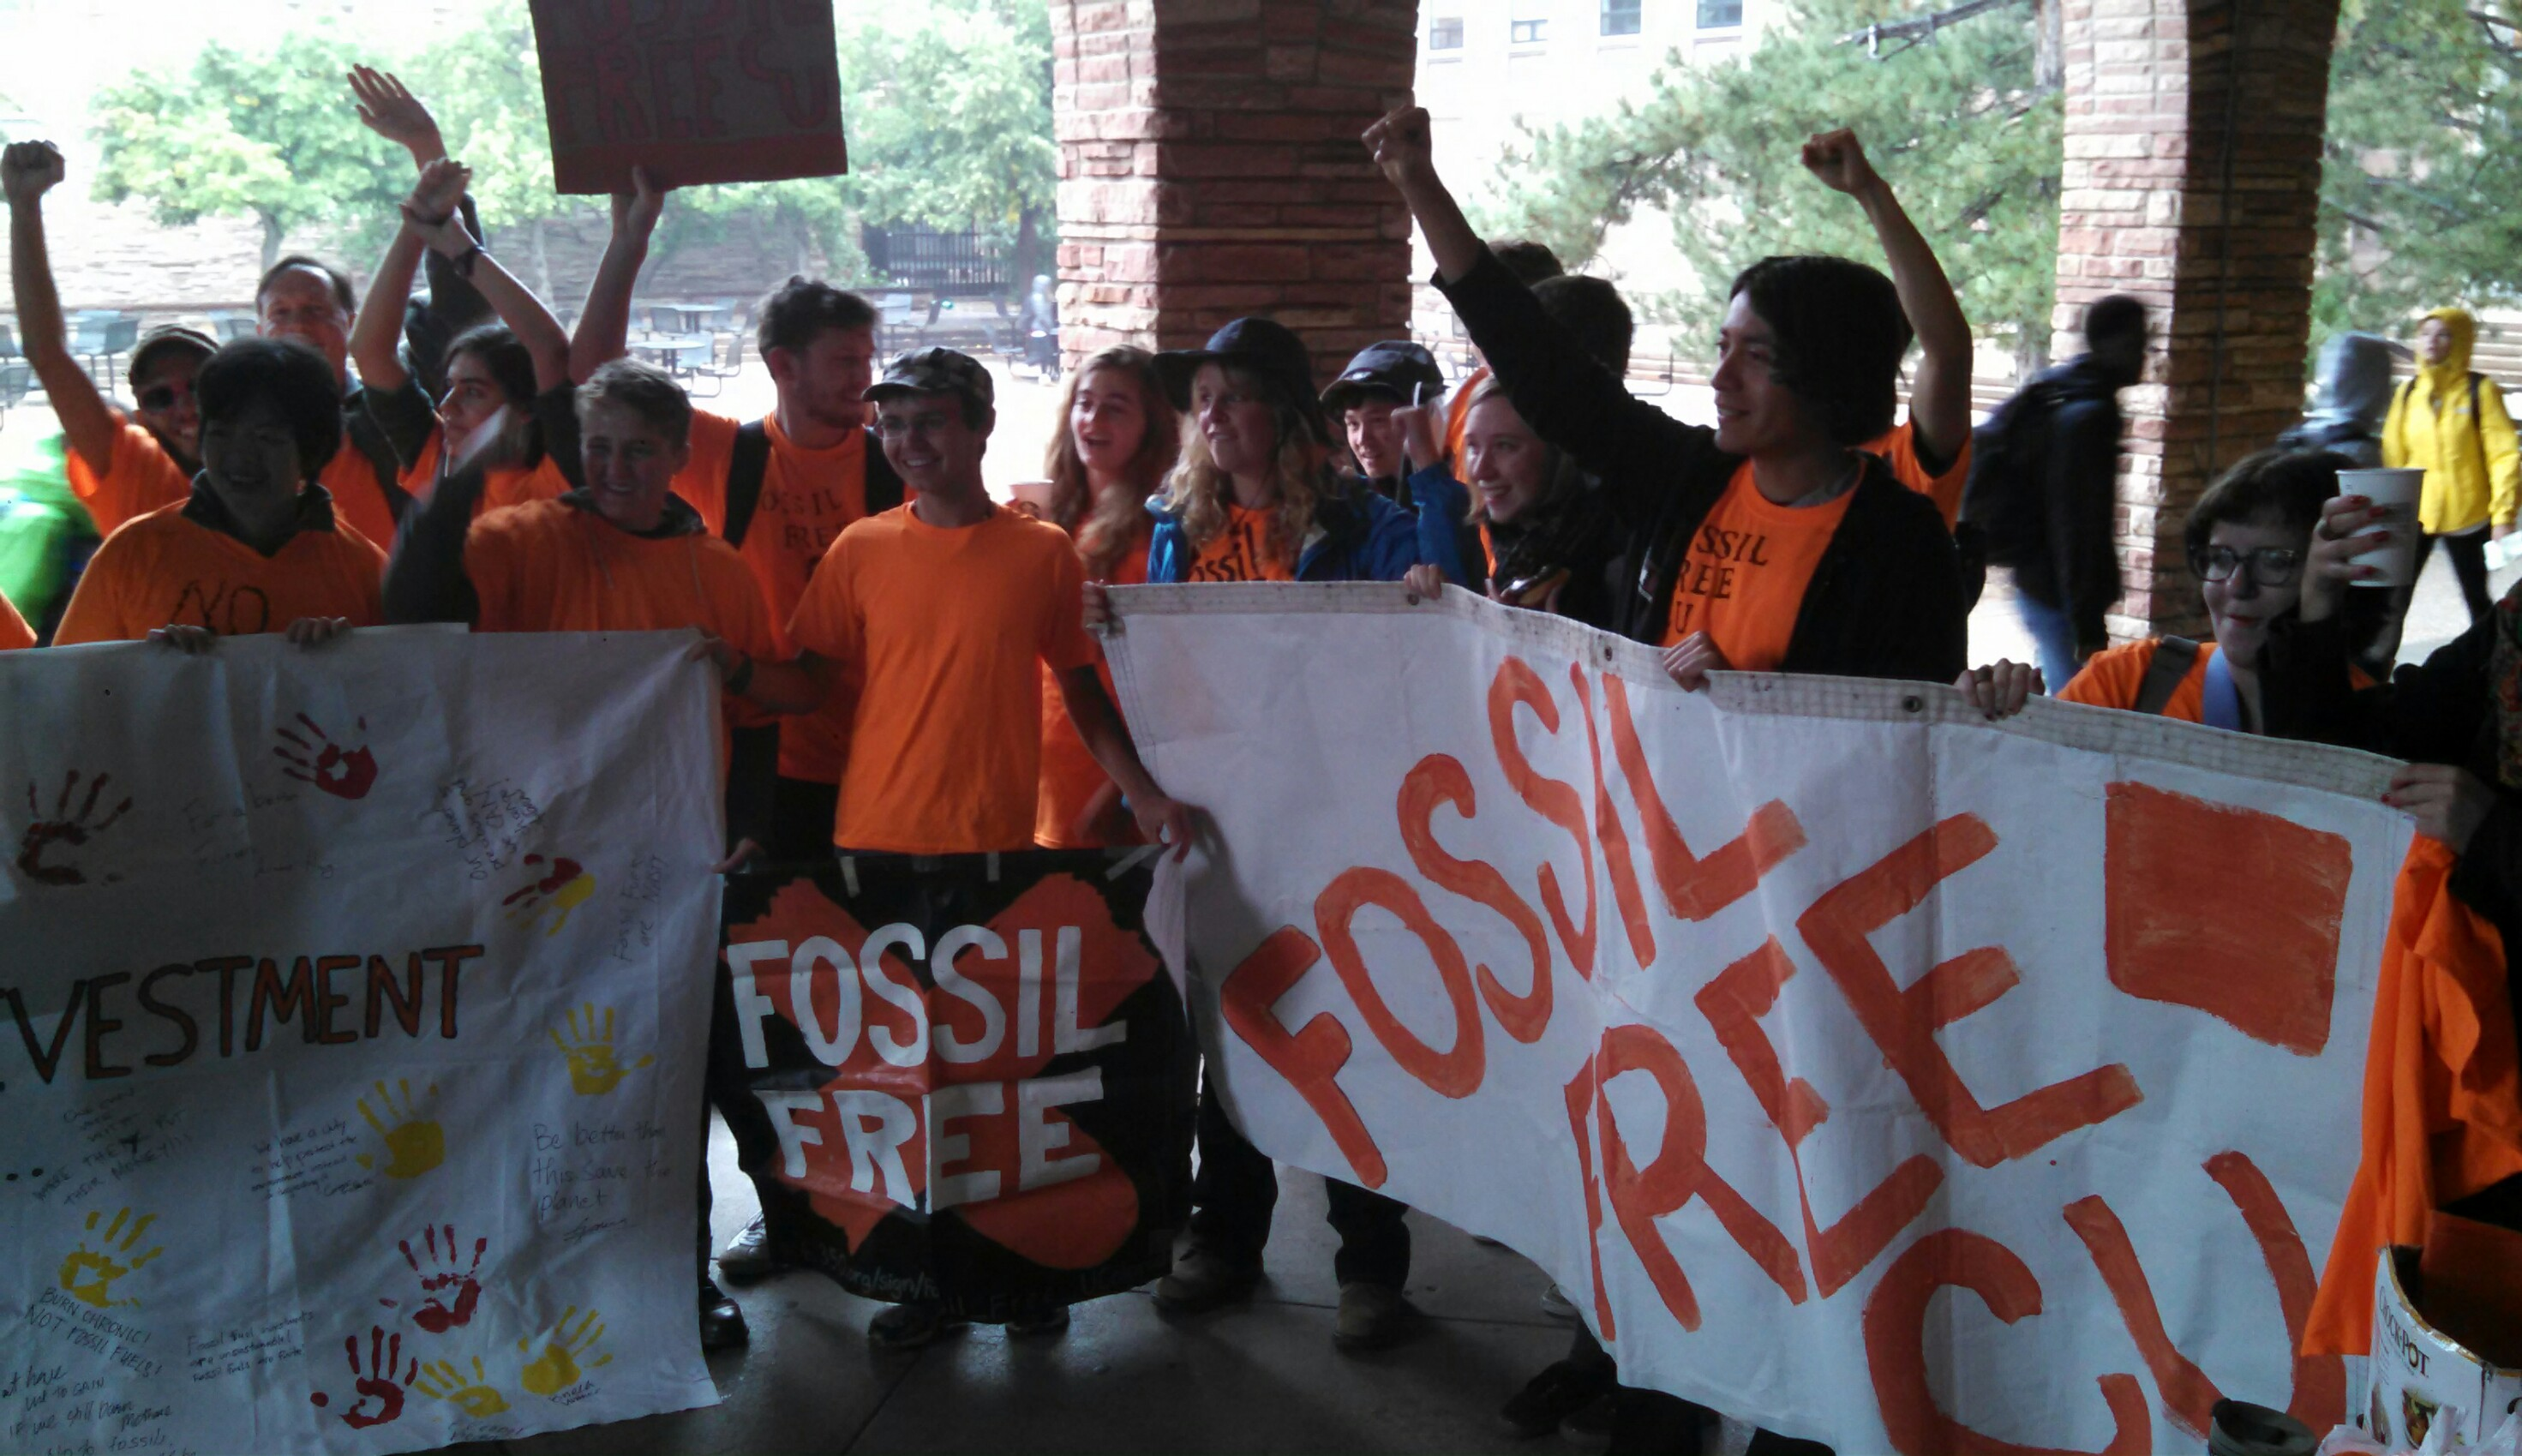 Caption: Student divestment campaigners at CU Boulder, Credit: Hannah Leigh Myers